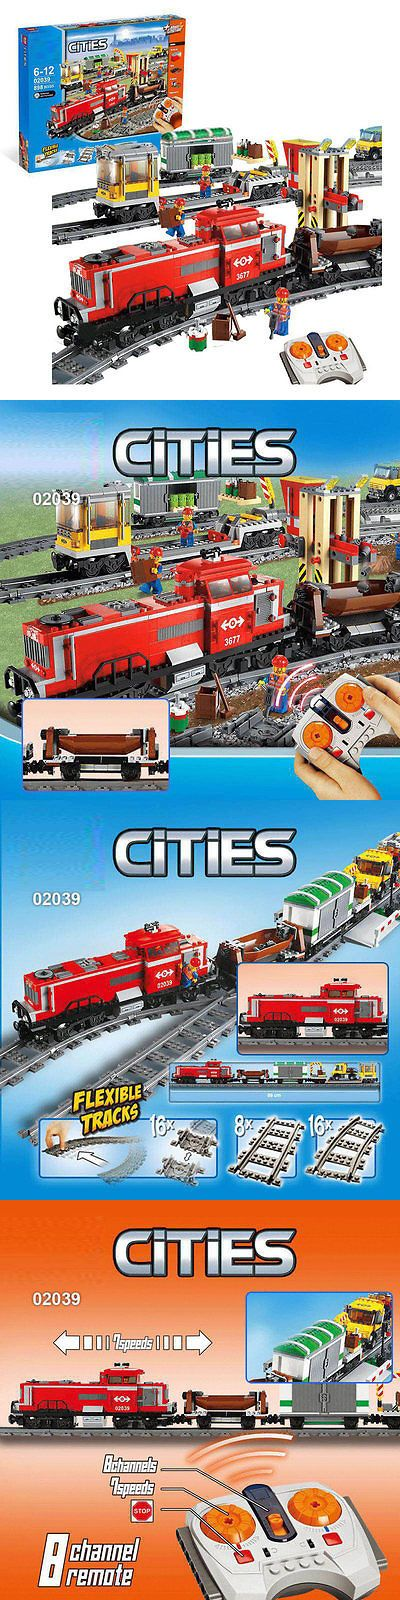 Other Building Toys 19015: Red Cargo Train Custom Replica Lego City 3677 -Express Delivery -No Box -> BUY IT NOW ONLY: $99.99 on eBay!